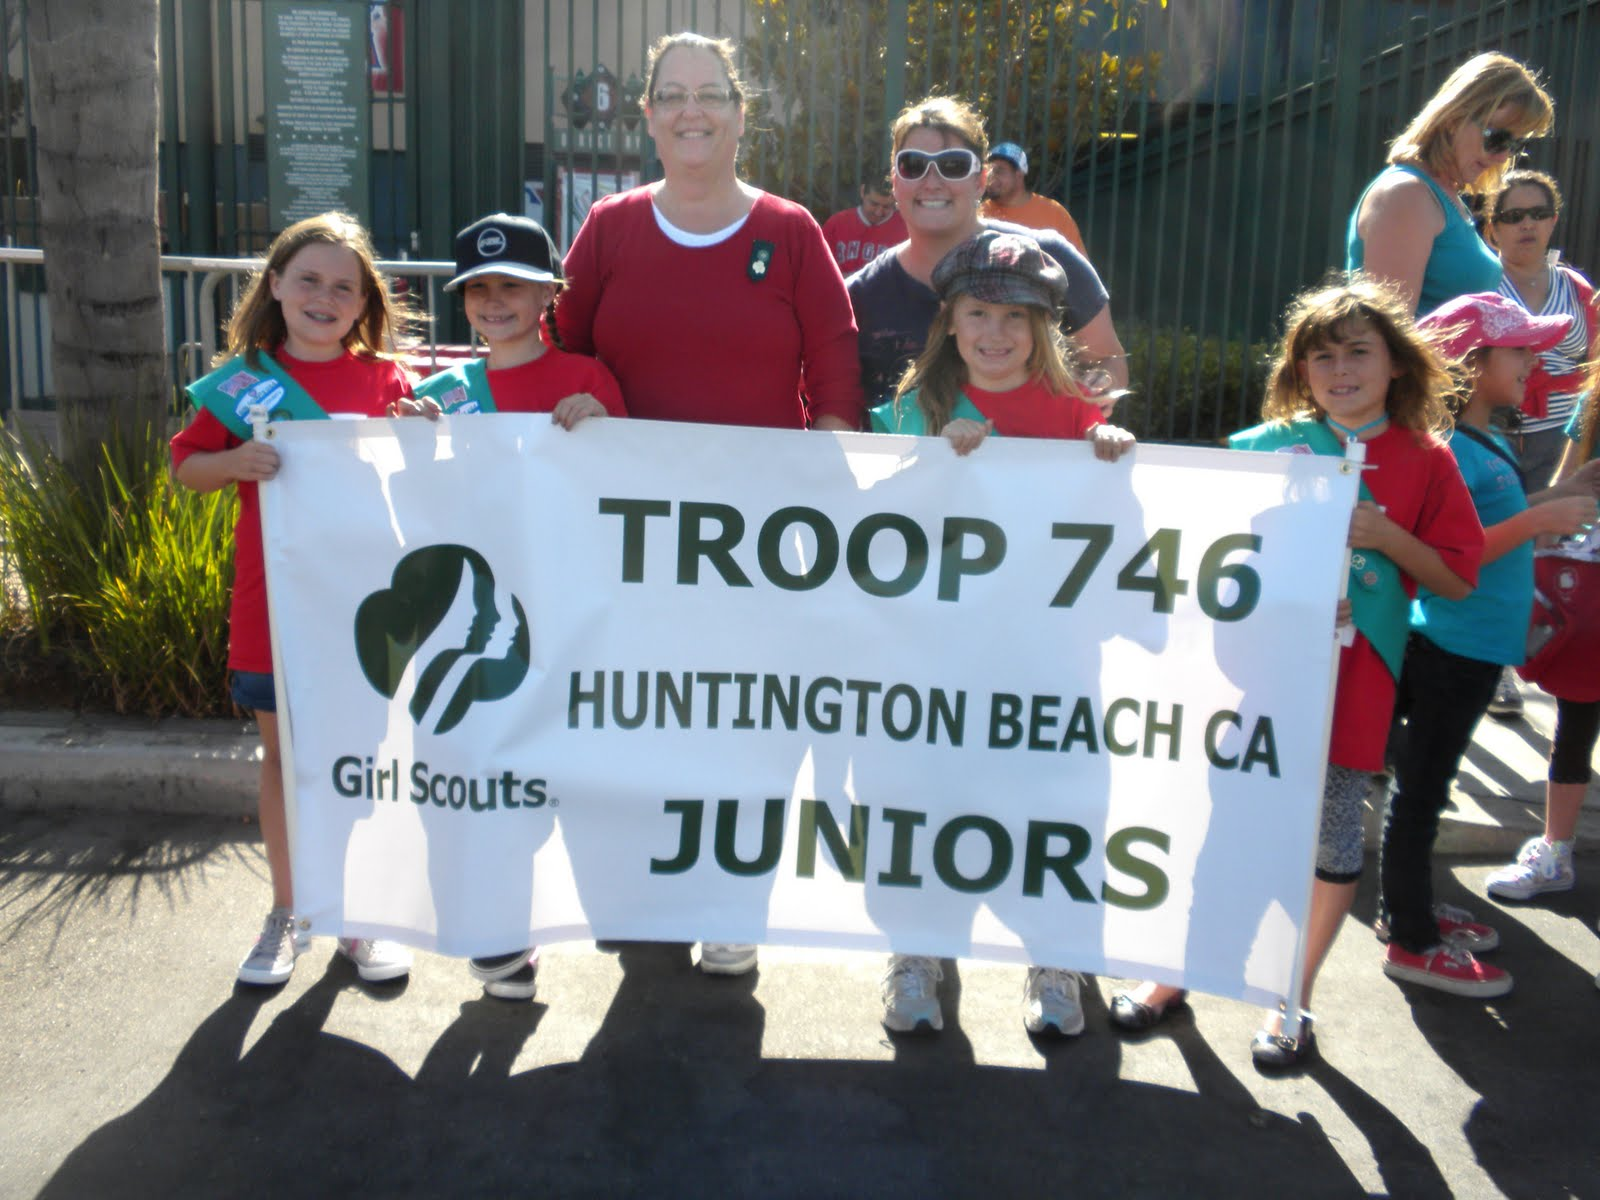 HUNTINGTON BEACH GIRL SCOUT TROOP 746: ANGEL GAME and BANNER